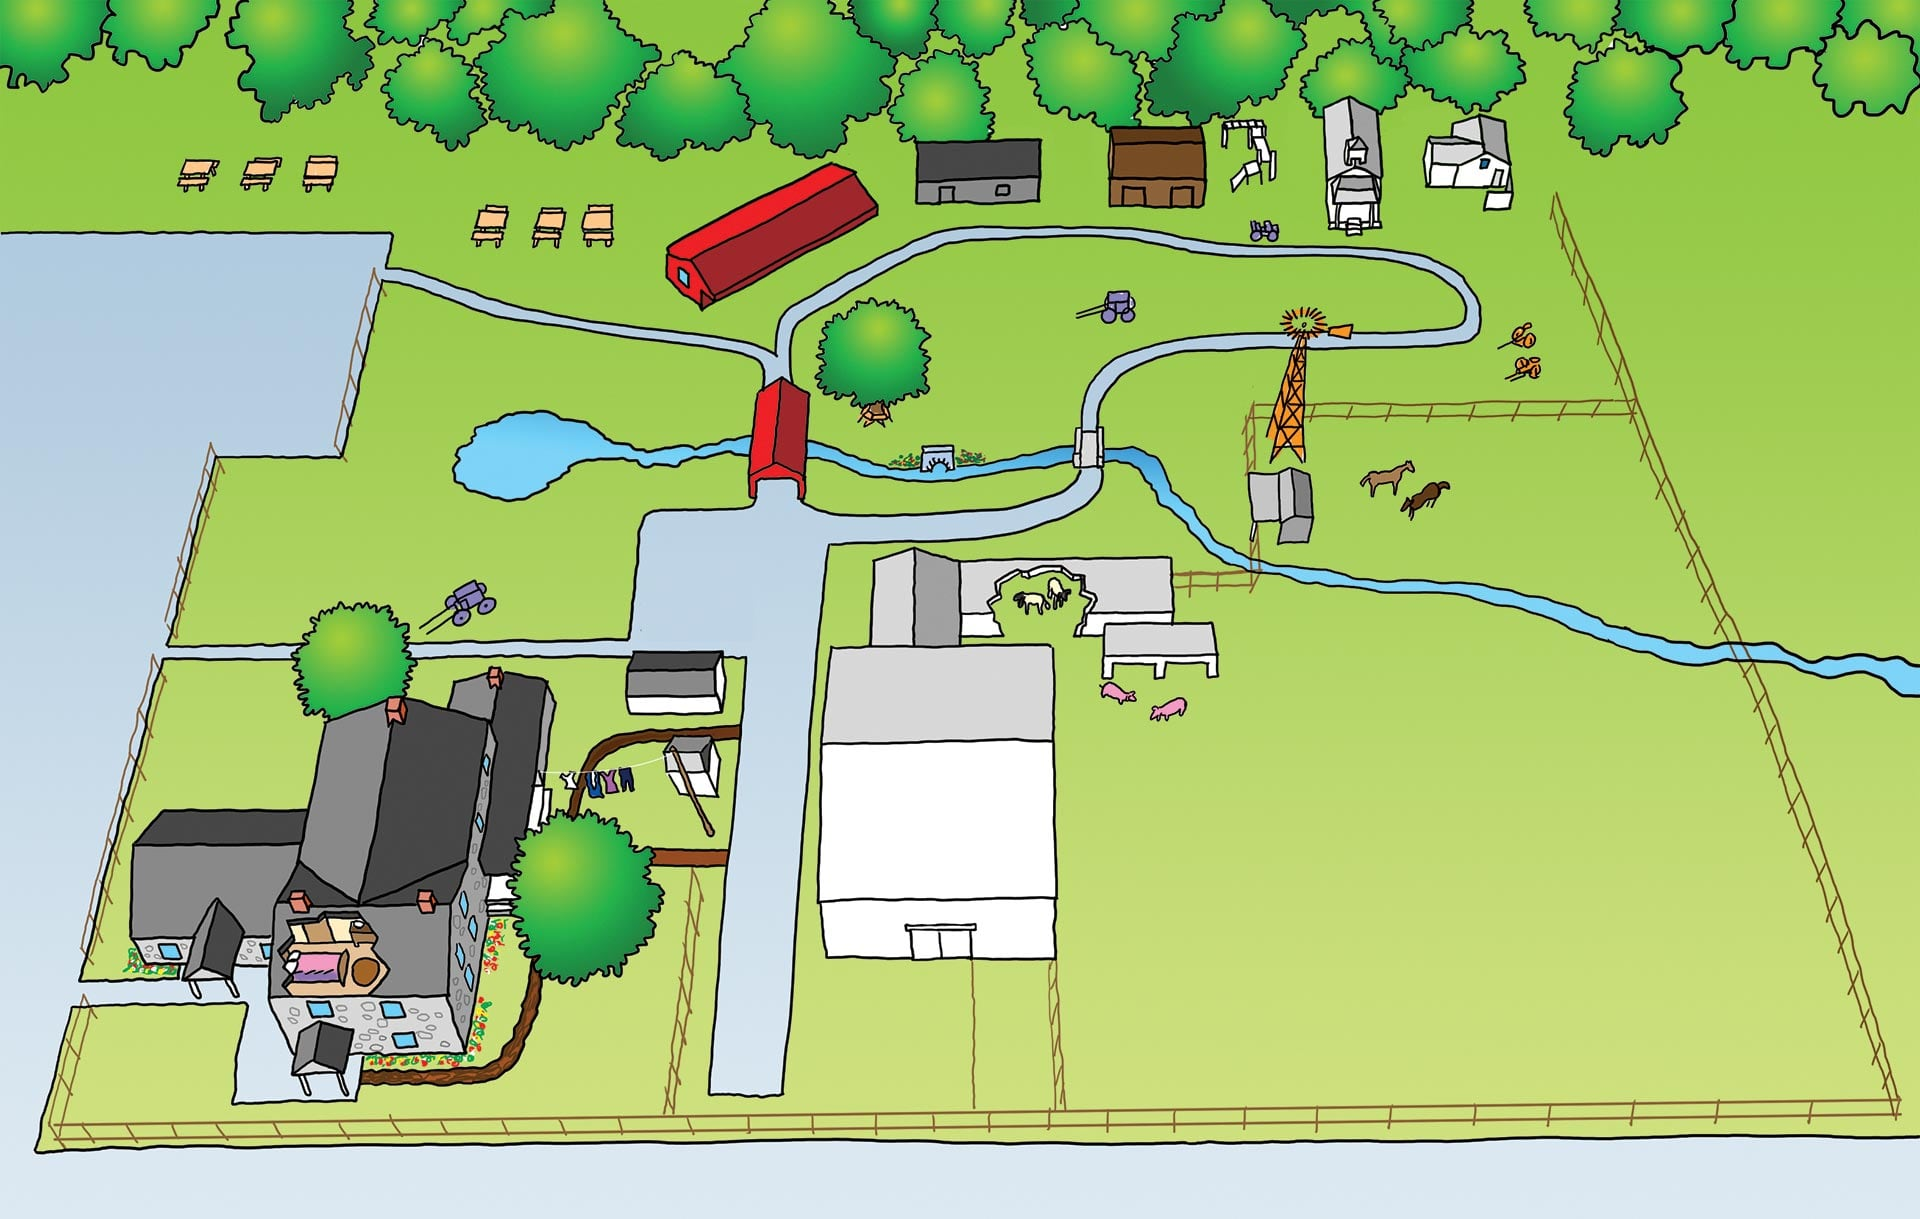 Map of The Amish Village